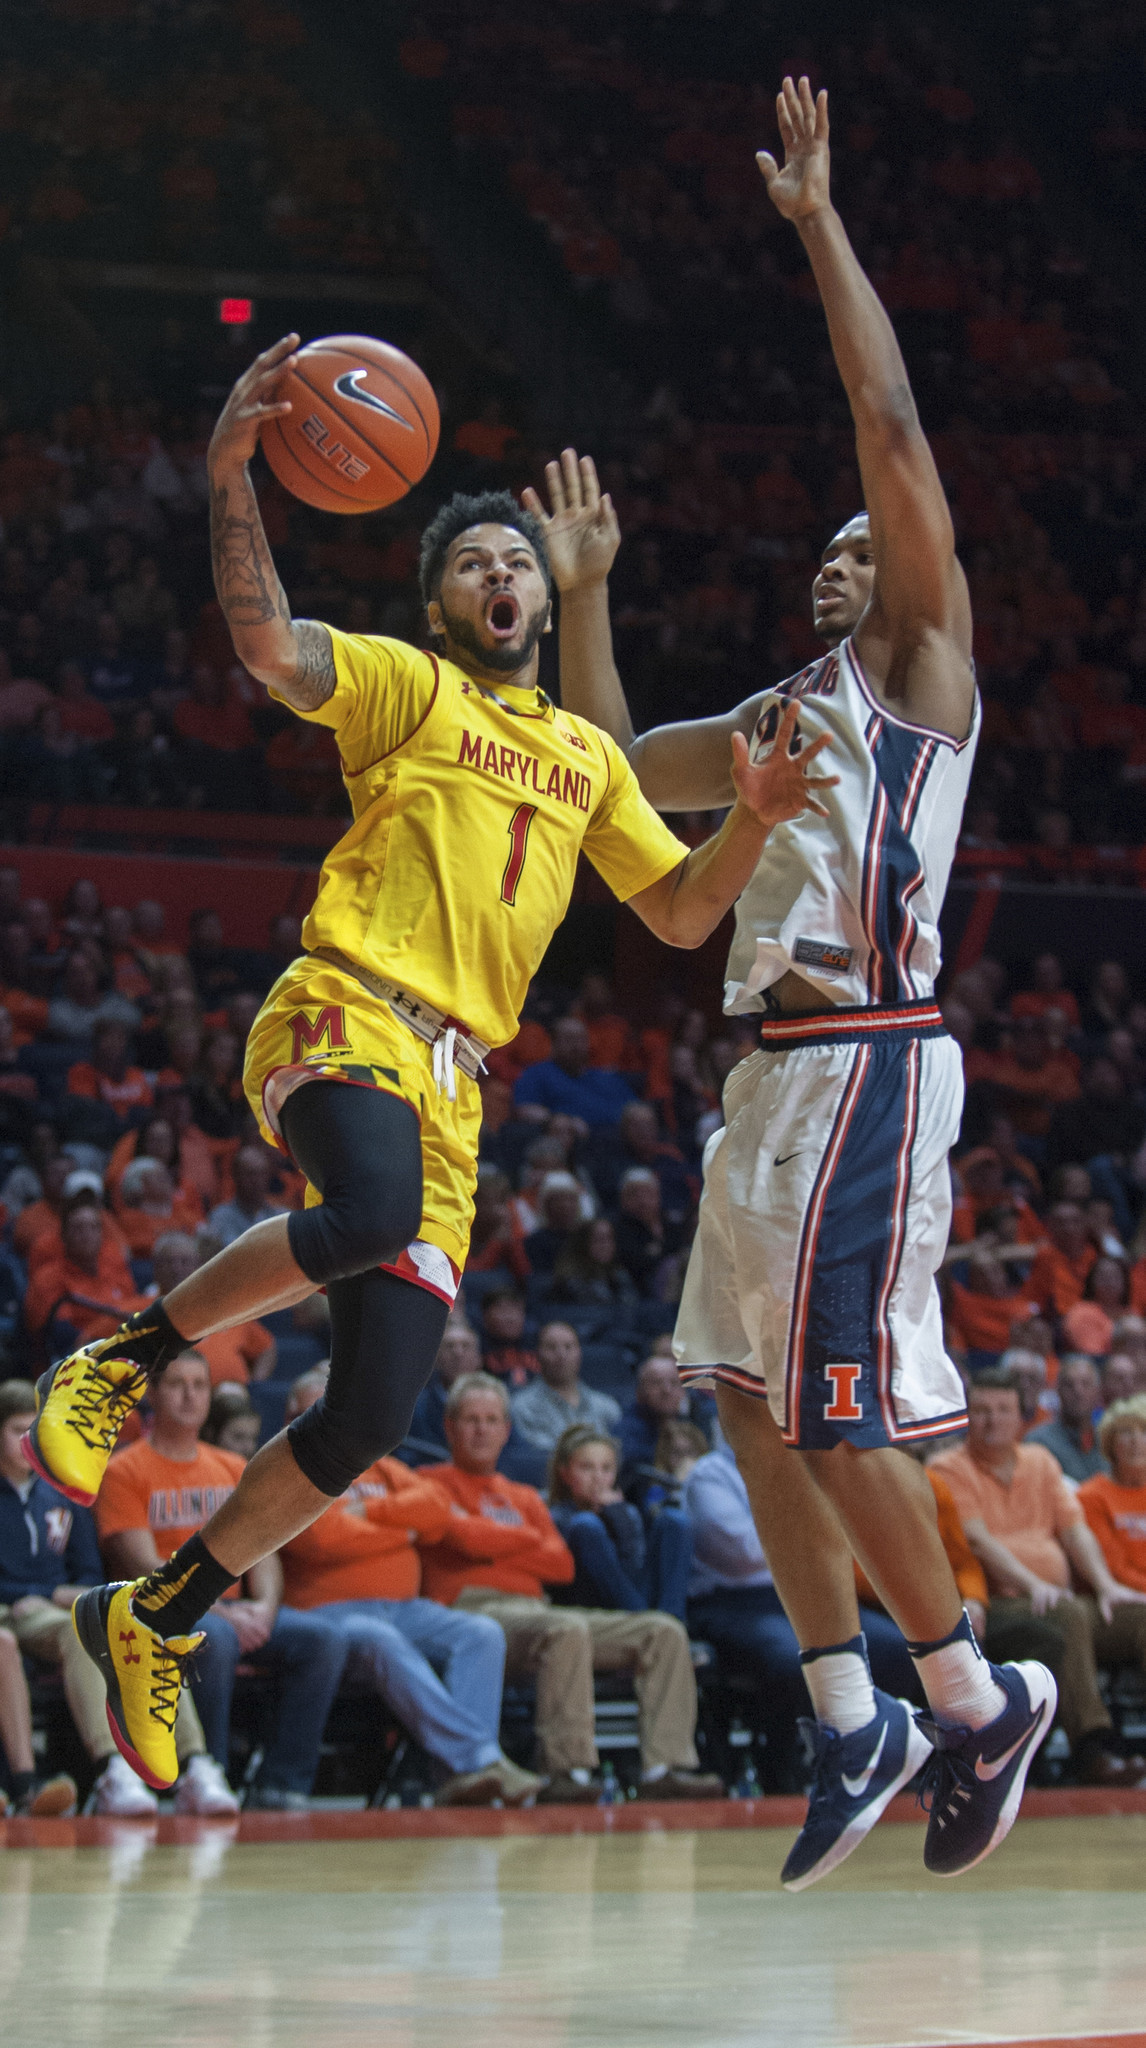 Bal-maryland-illinois-basketball-20170114